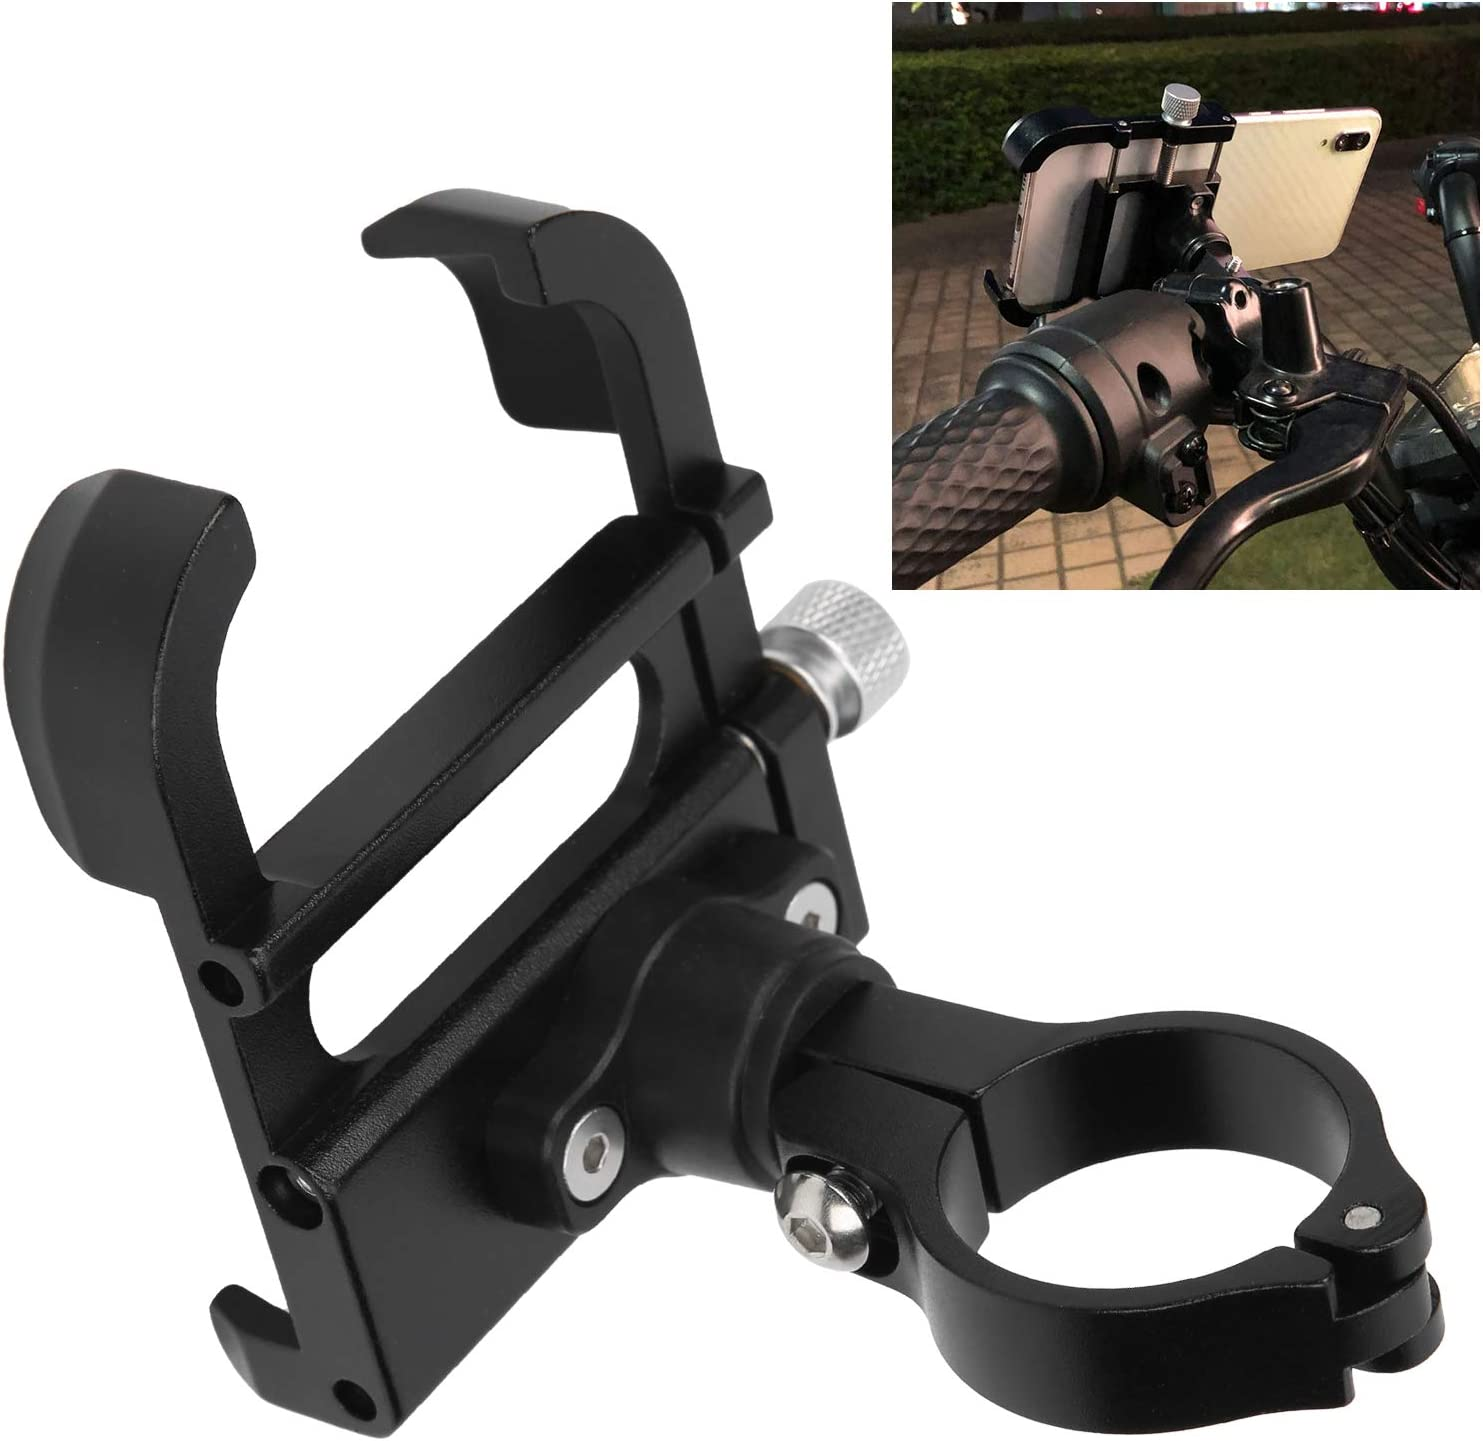 mart Be super welcome Bicycle Phone Holder Aluminum Alloy 6.8x6cm Rotatable Bicy 168g